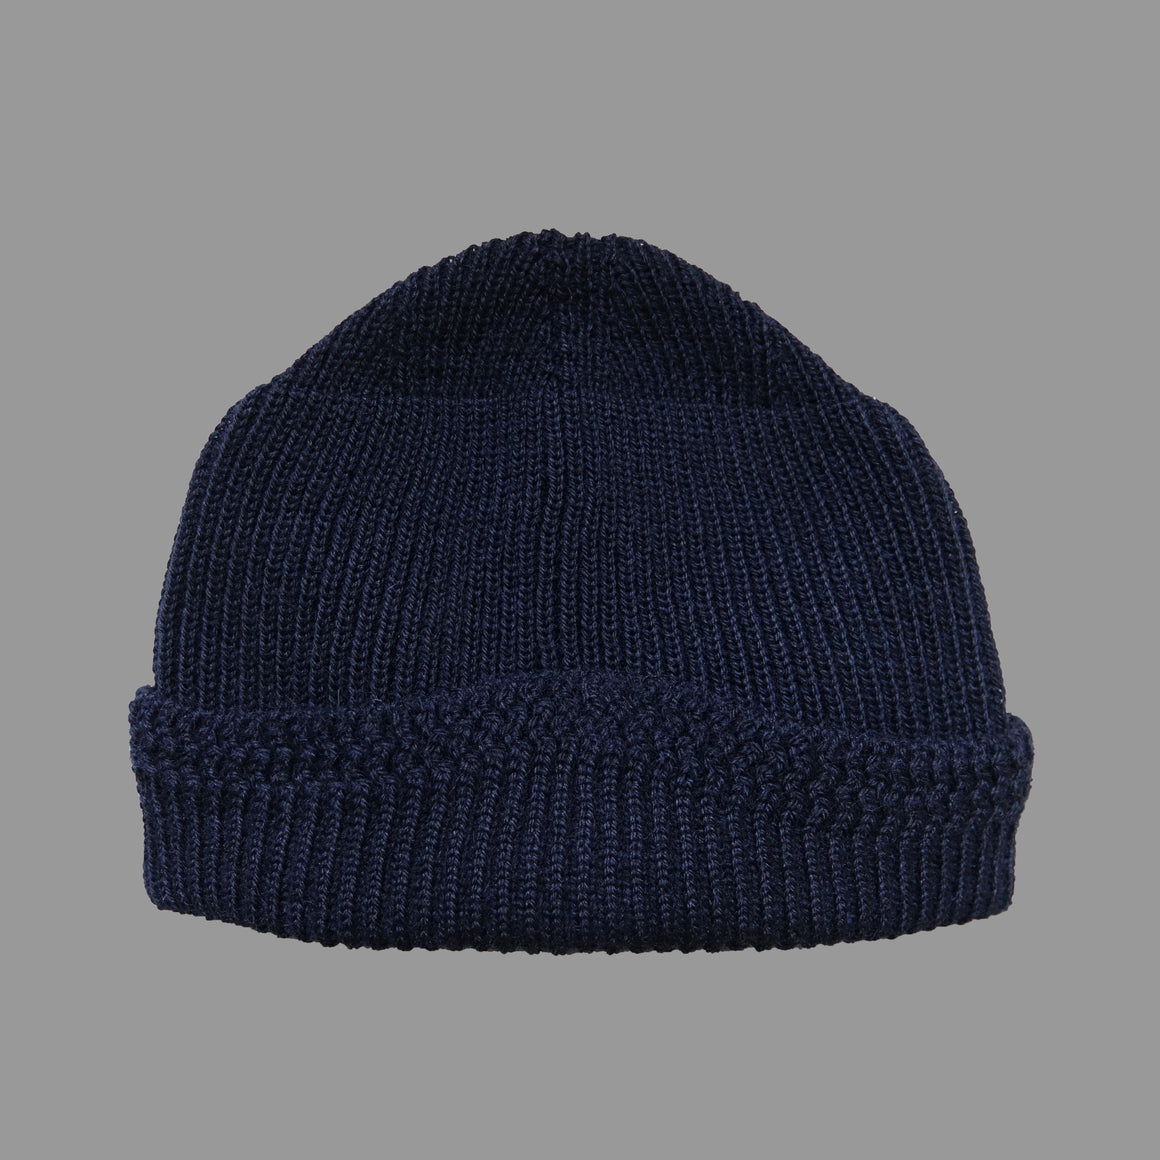 N.S.C DECK HAT - NAVY